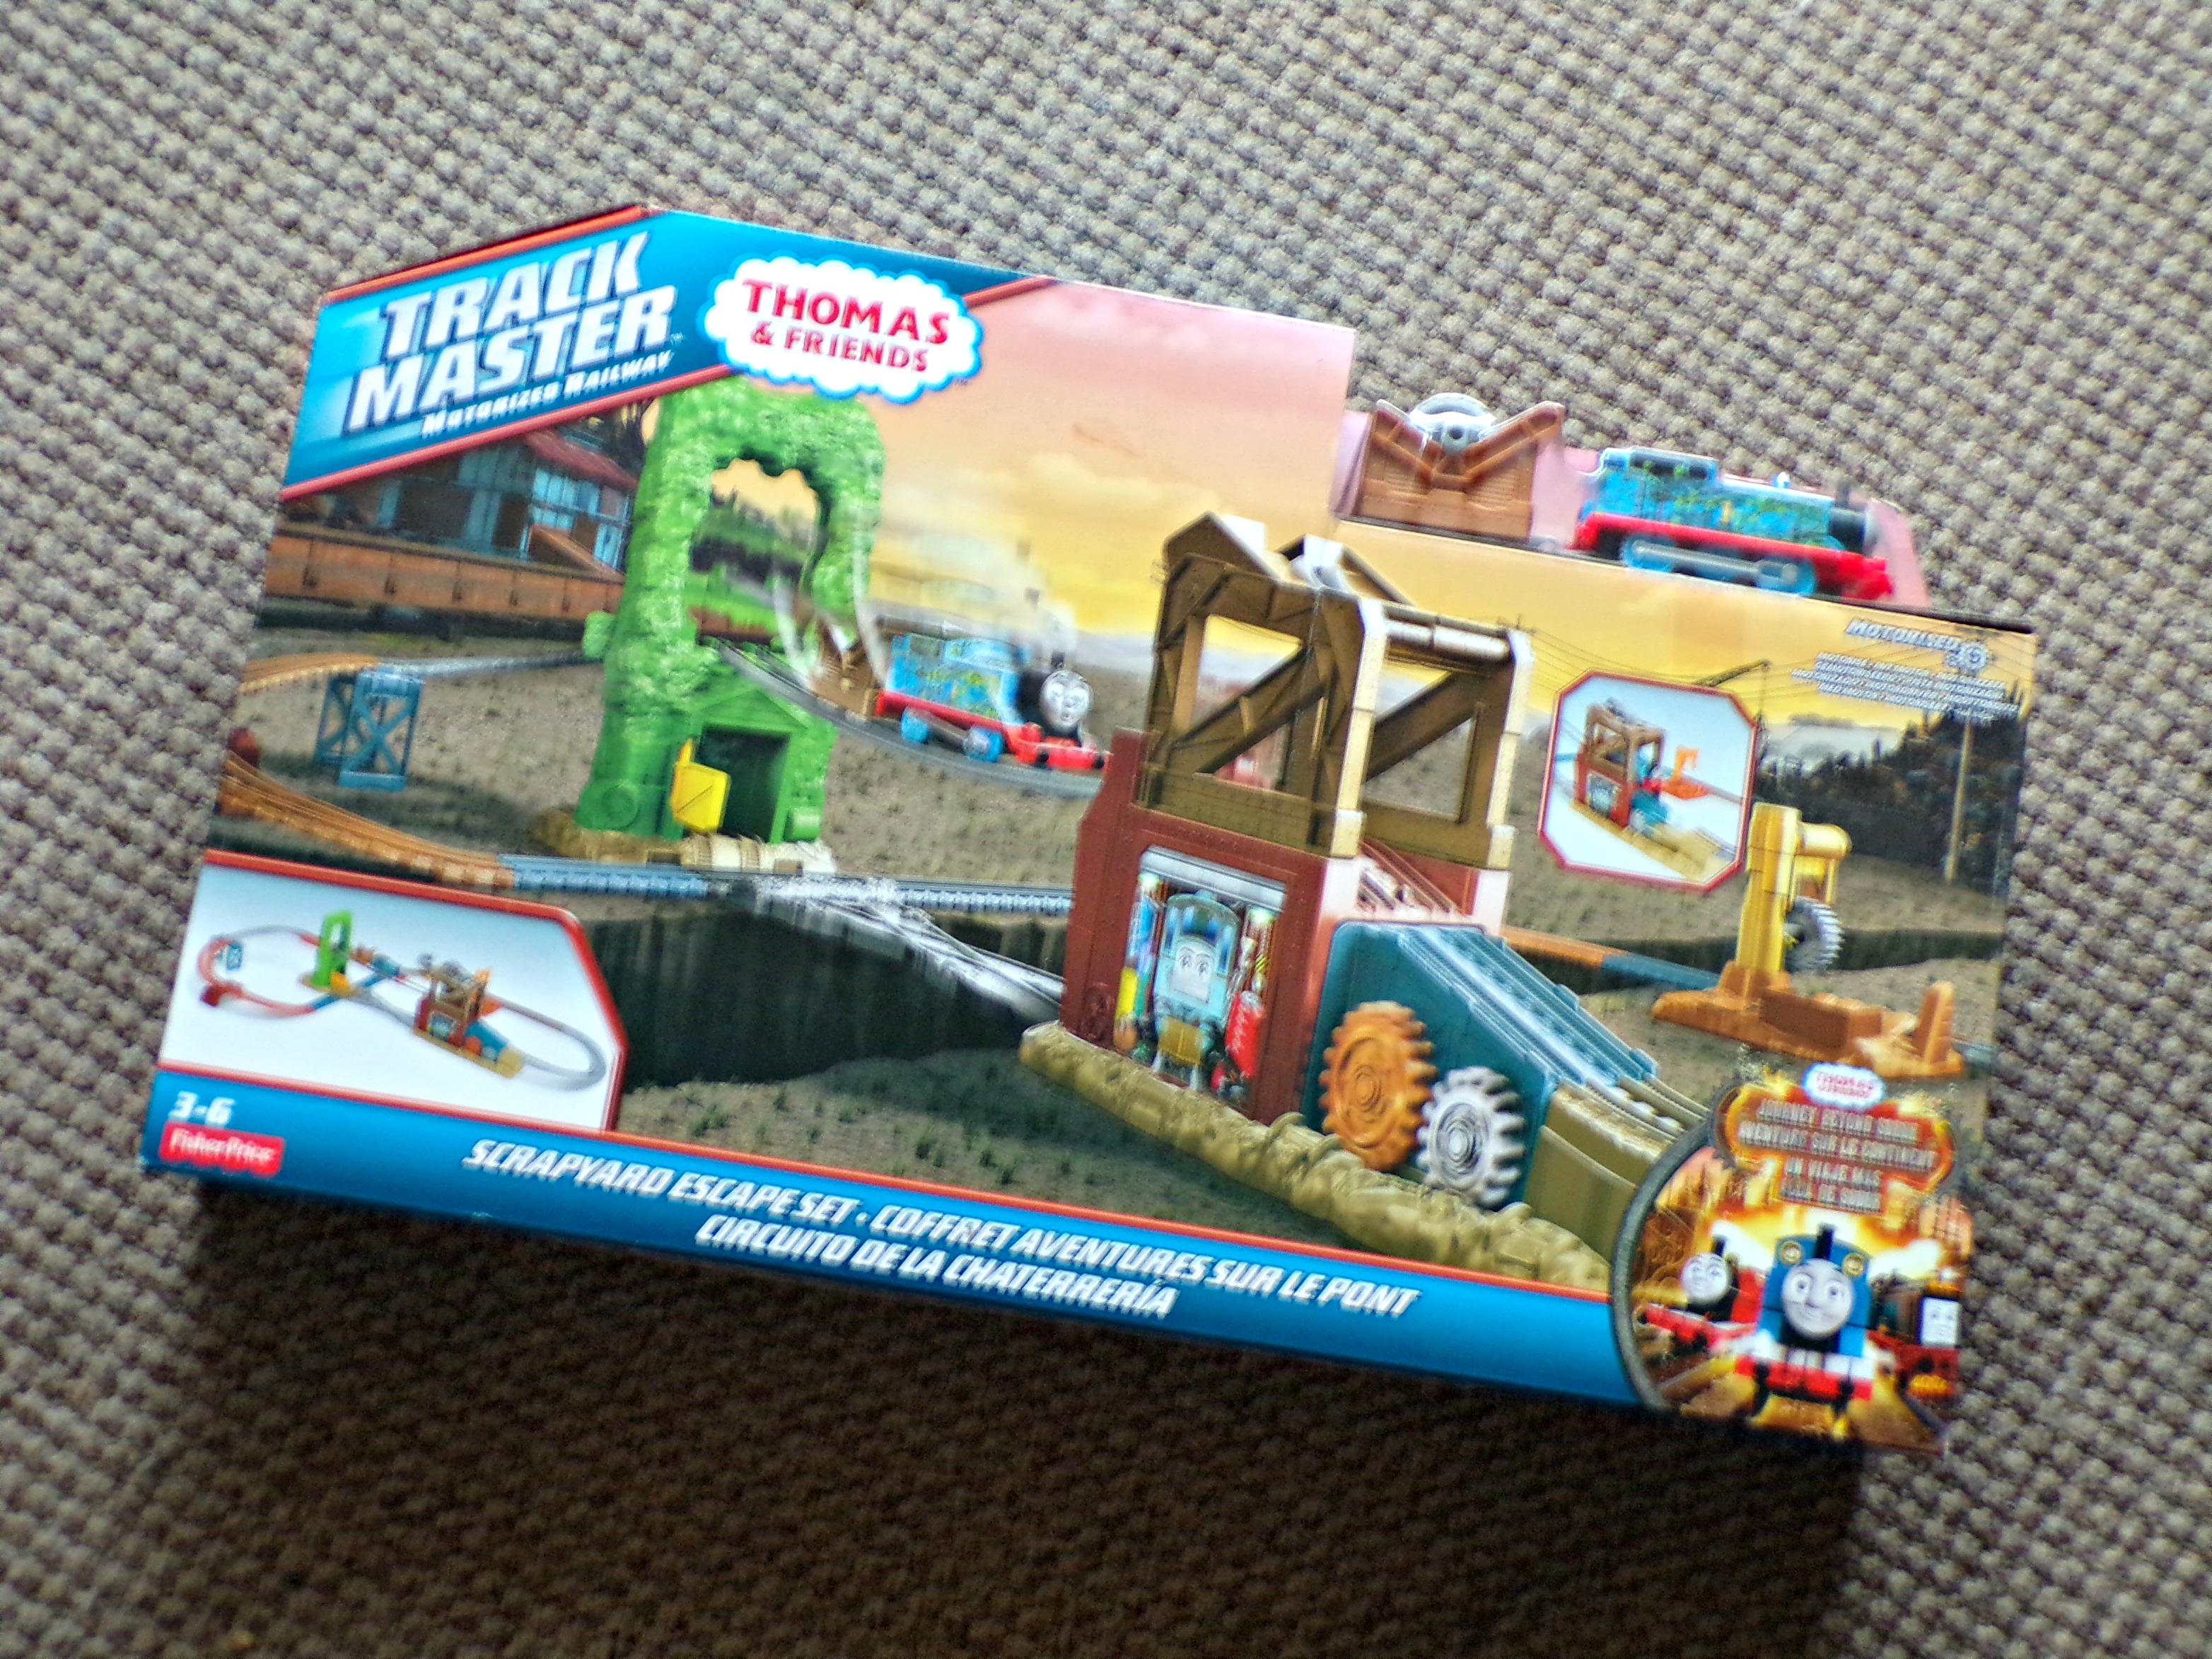 Thomas & Friends TraAckmaster Scrapyard Escape